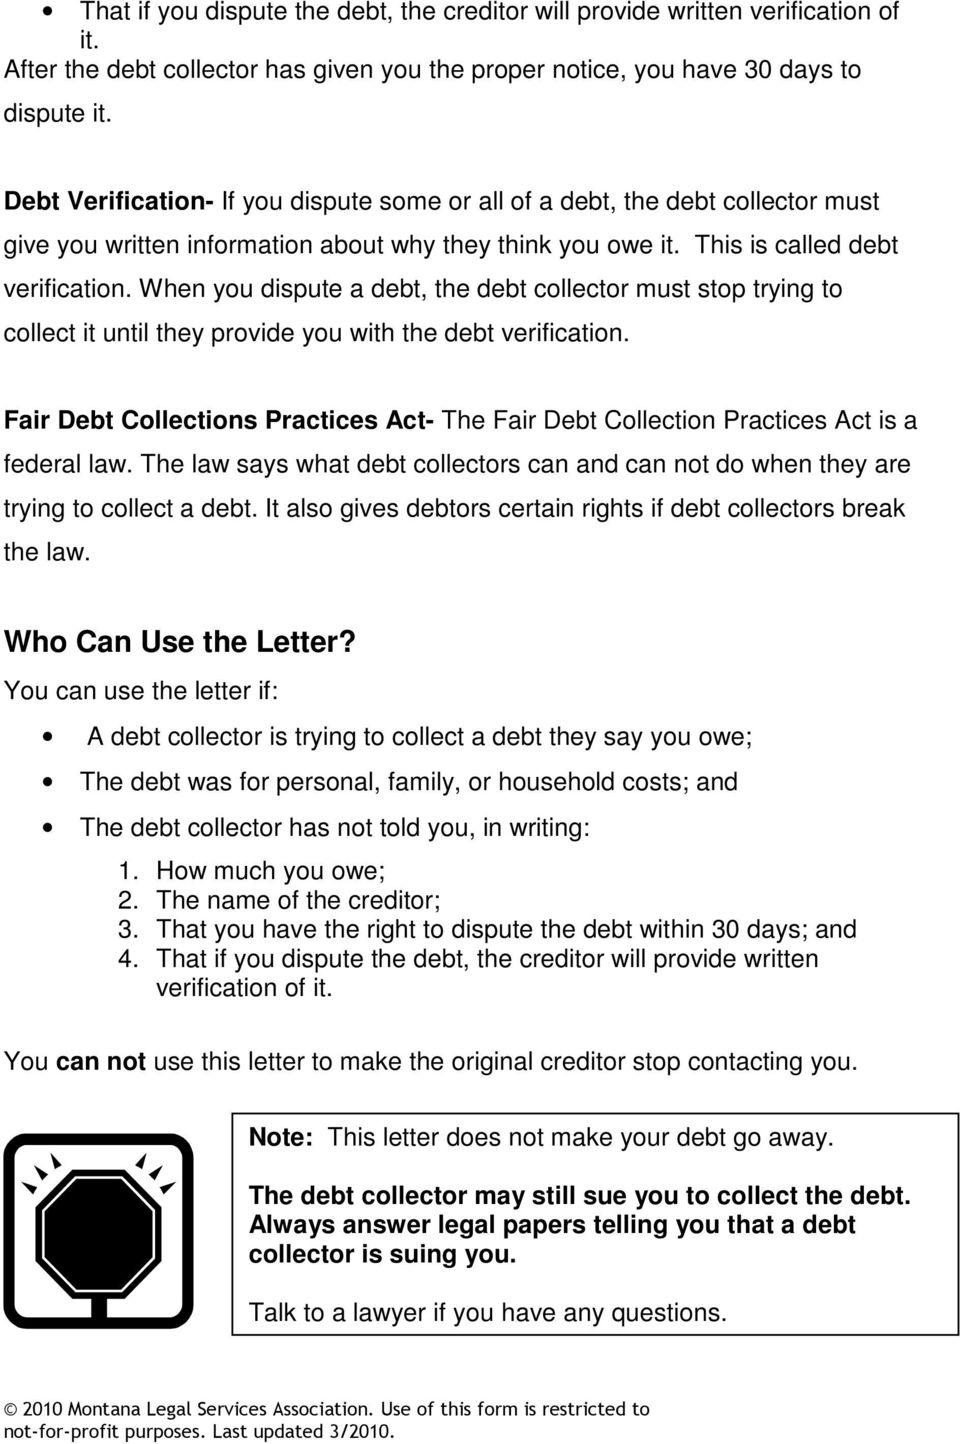 Debt Dispute Letter To Creditor from docplayer.net